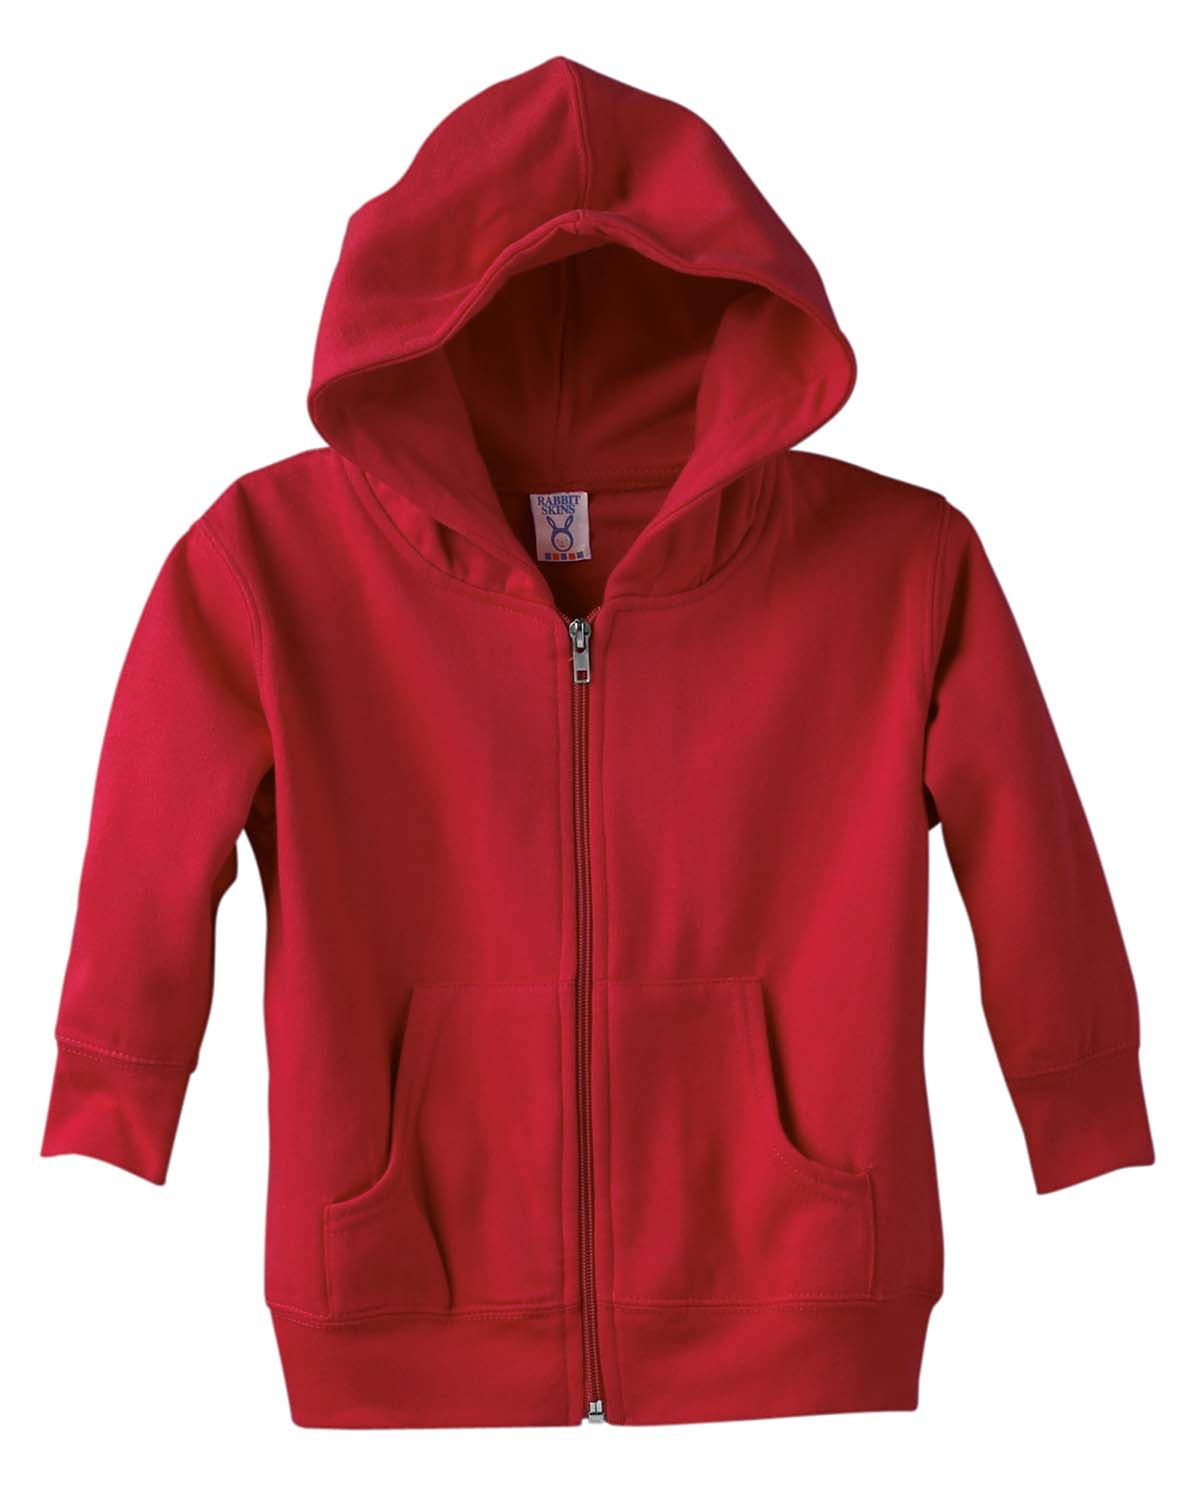 Rabbit Skins 3346 Toddler Hooded Full-Zip Sweatshirt